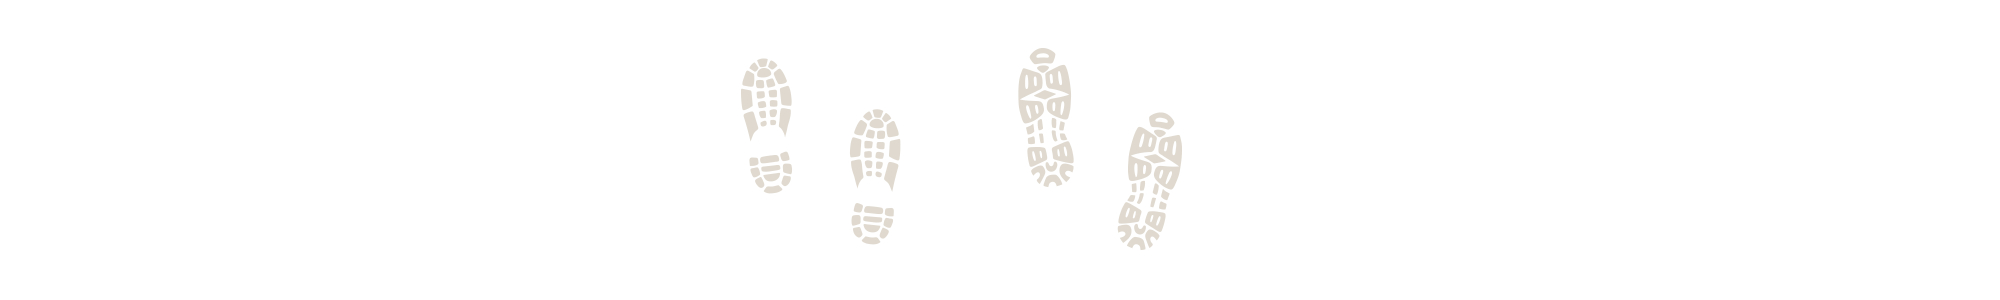 footsteps graphic